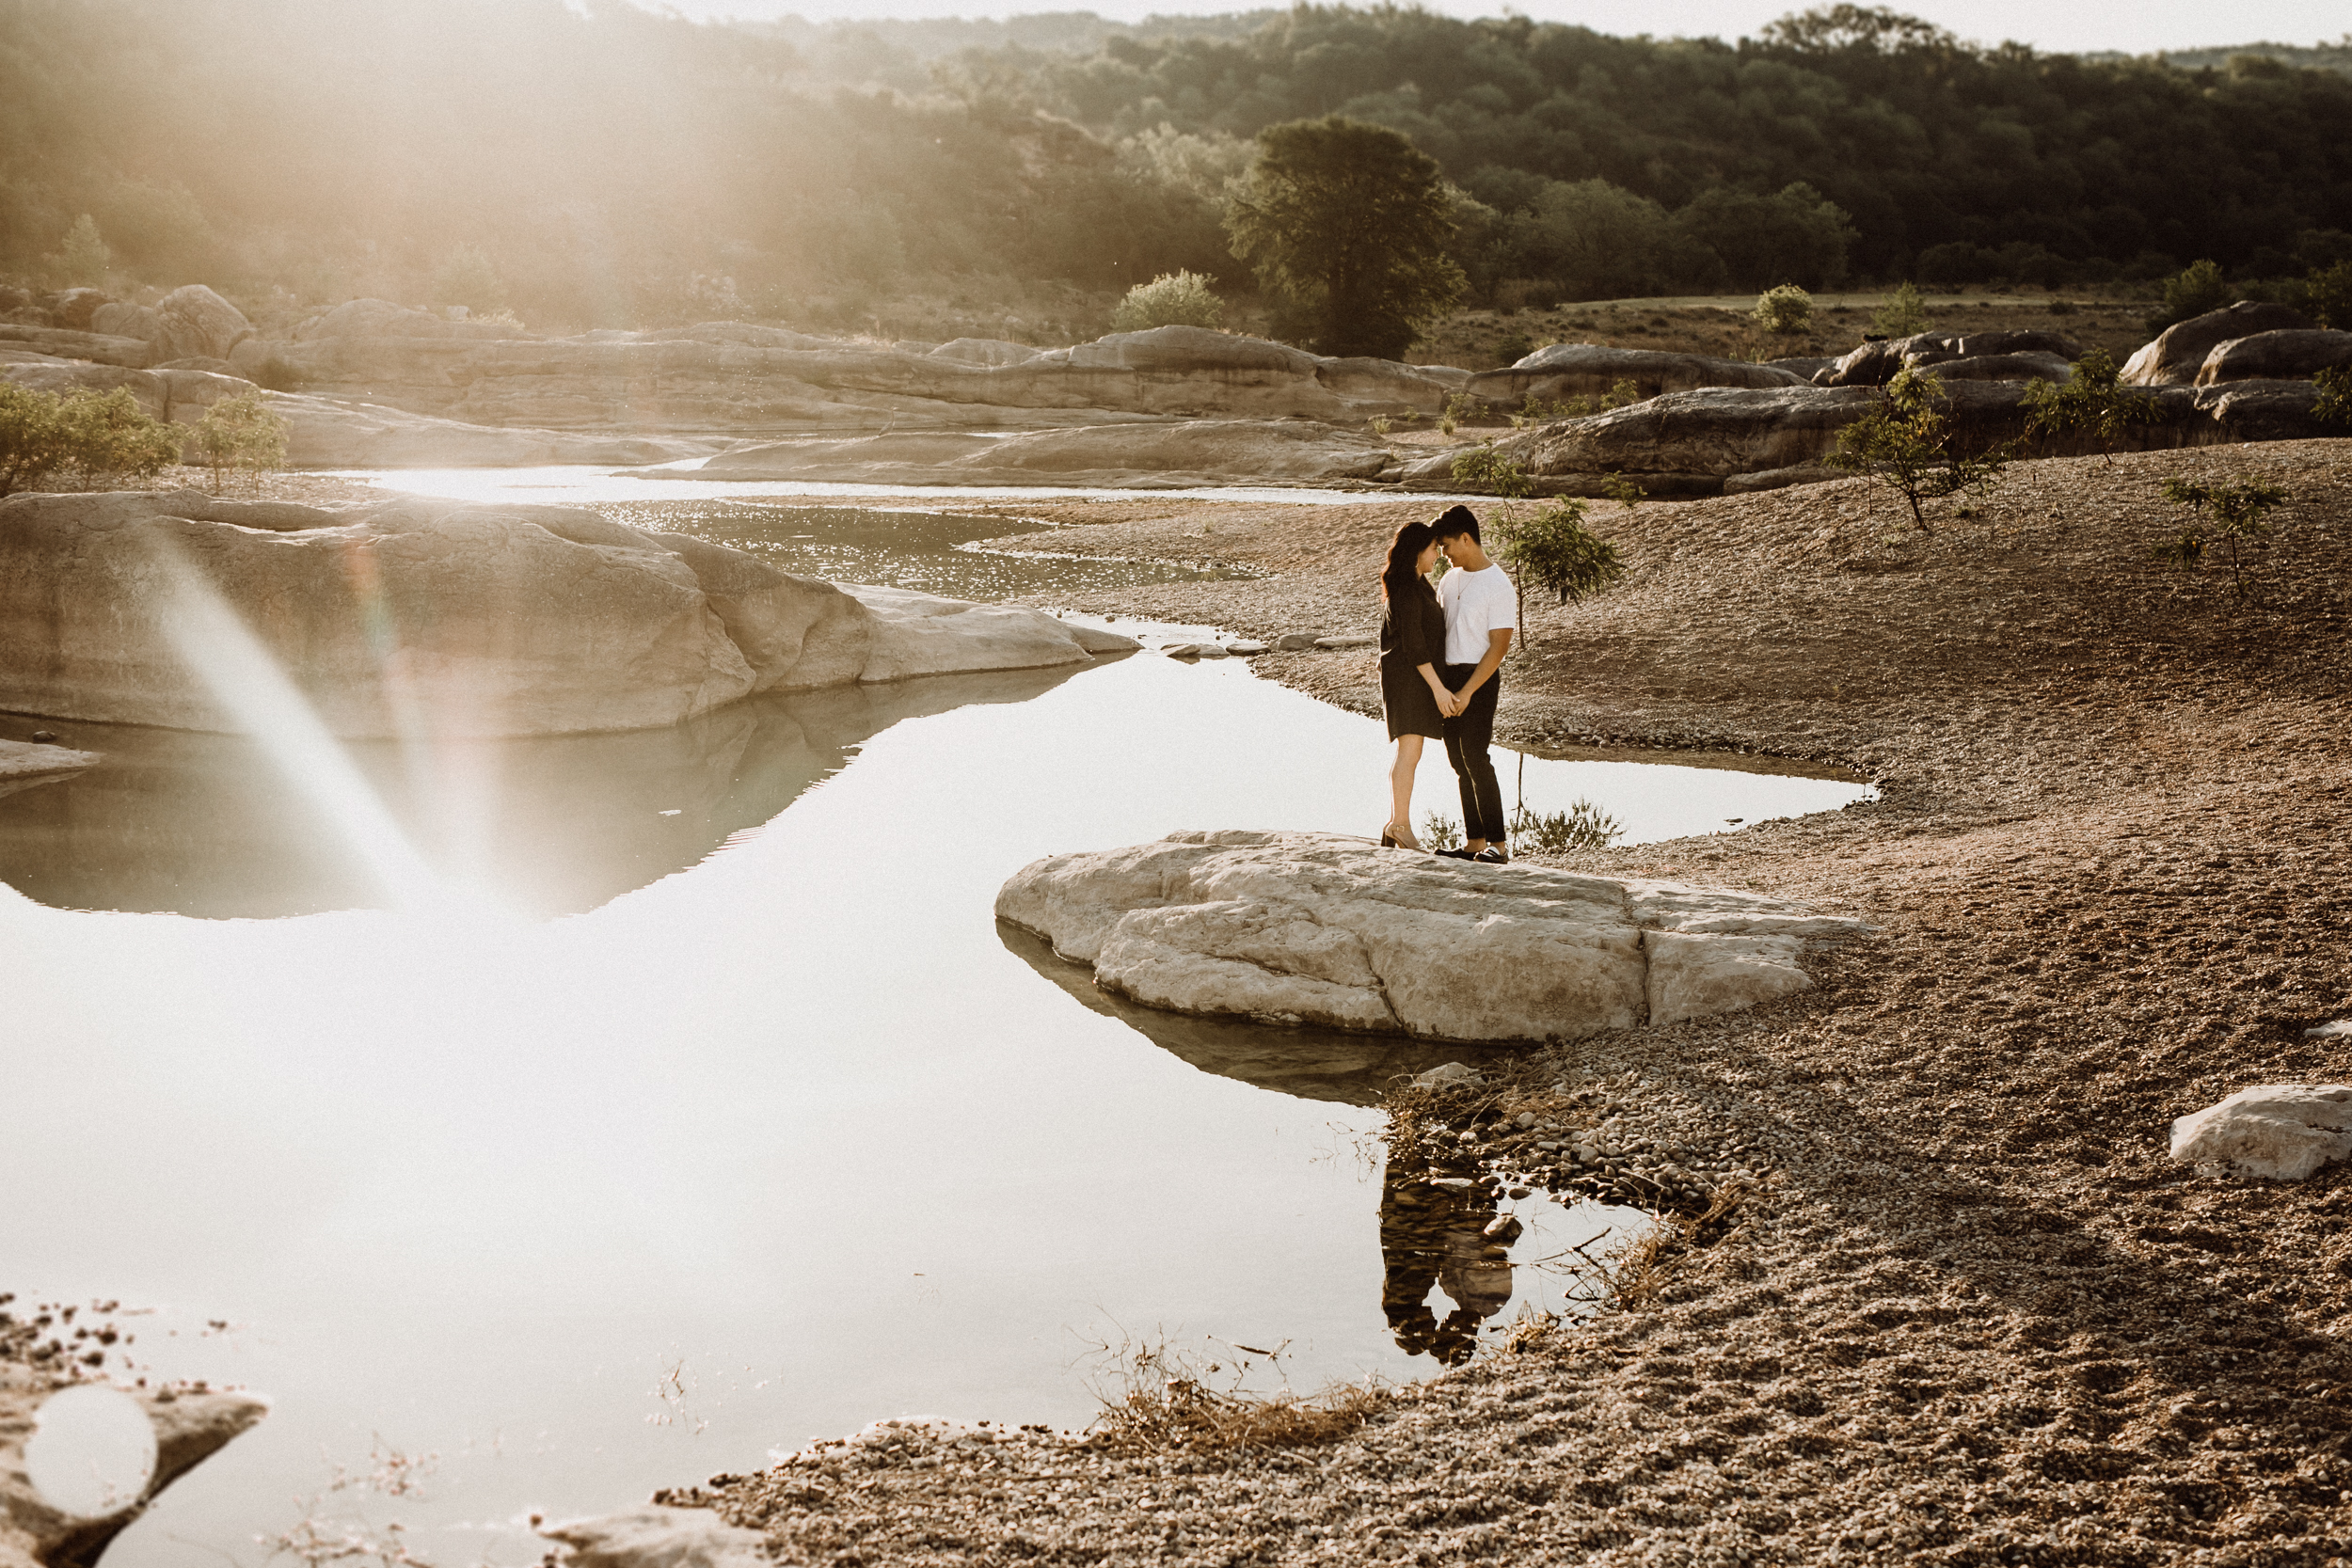 pedernales-falls-engagement-J+P (75 of 133).jpg